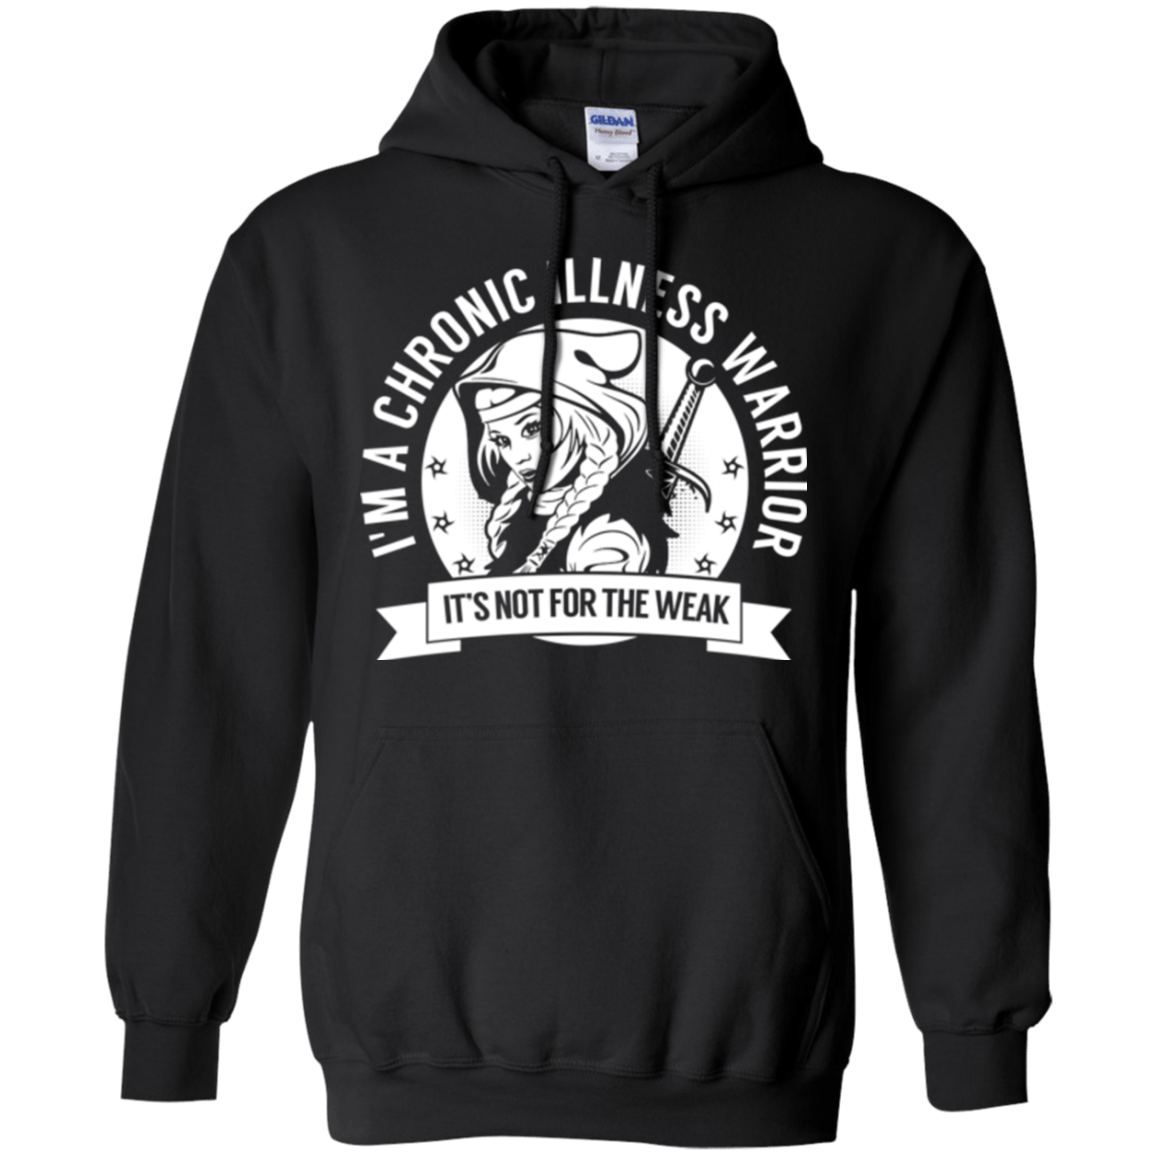 Chronic Illness Warrior Hooded Pullover Hoodie 8 oz. - The Unchargeables